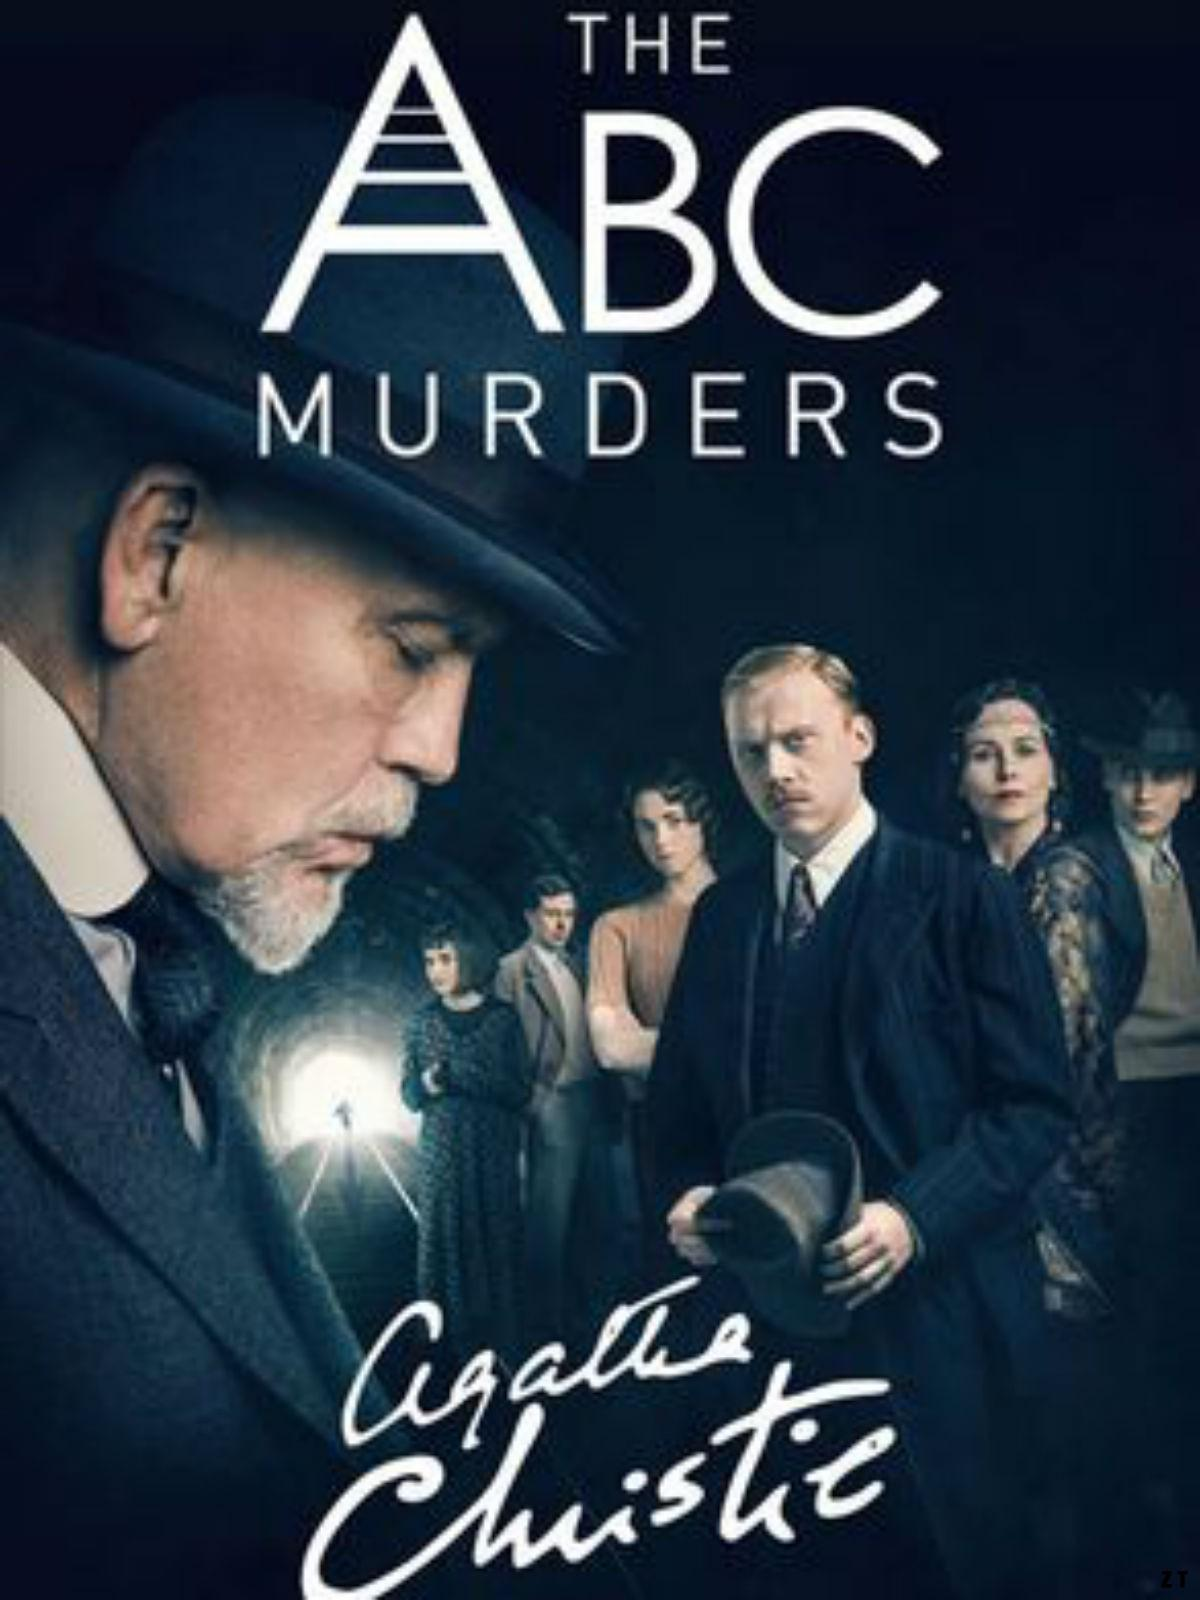 Telecharger The ABC Murders- Saison 1 [03/??] VOSTFR | Qualité HD 720p